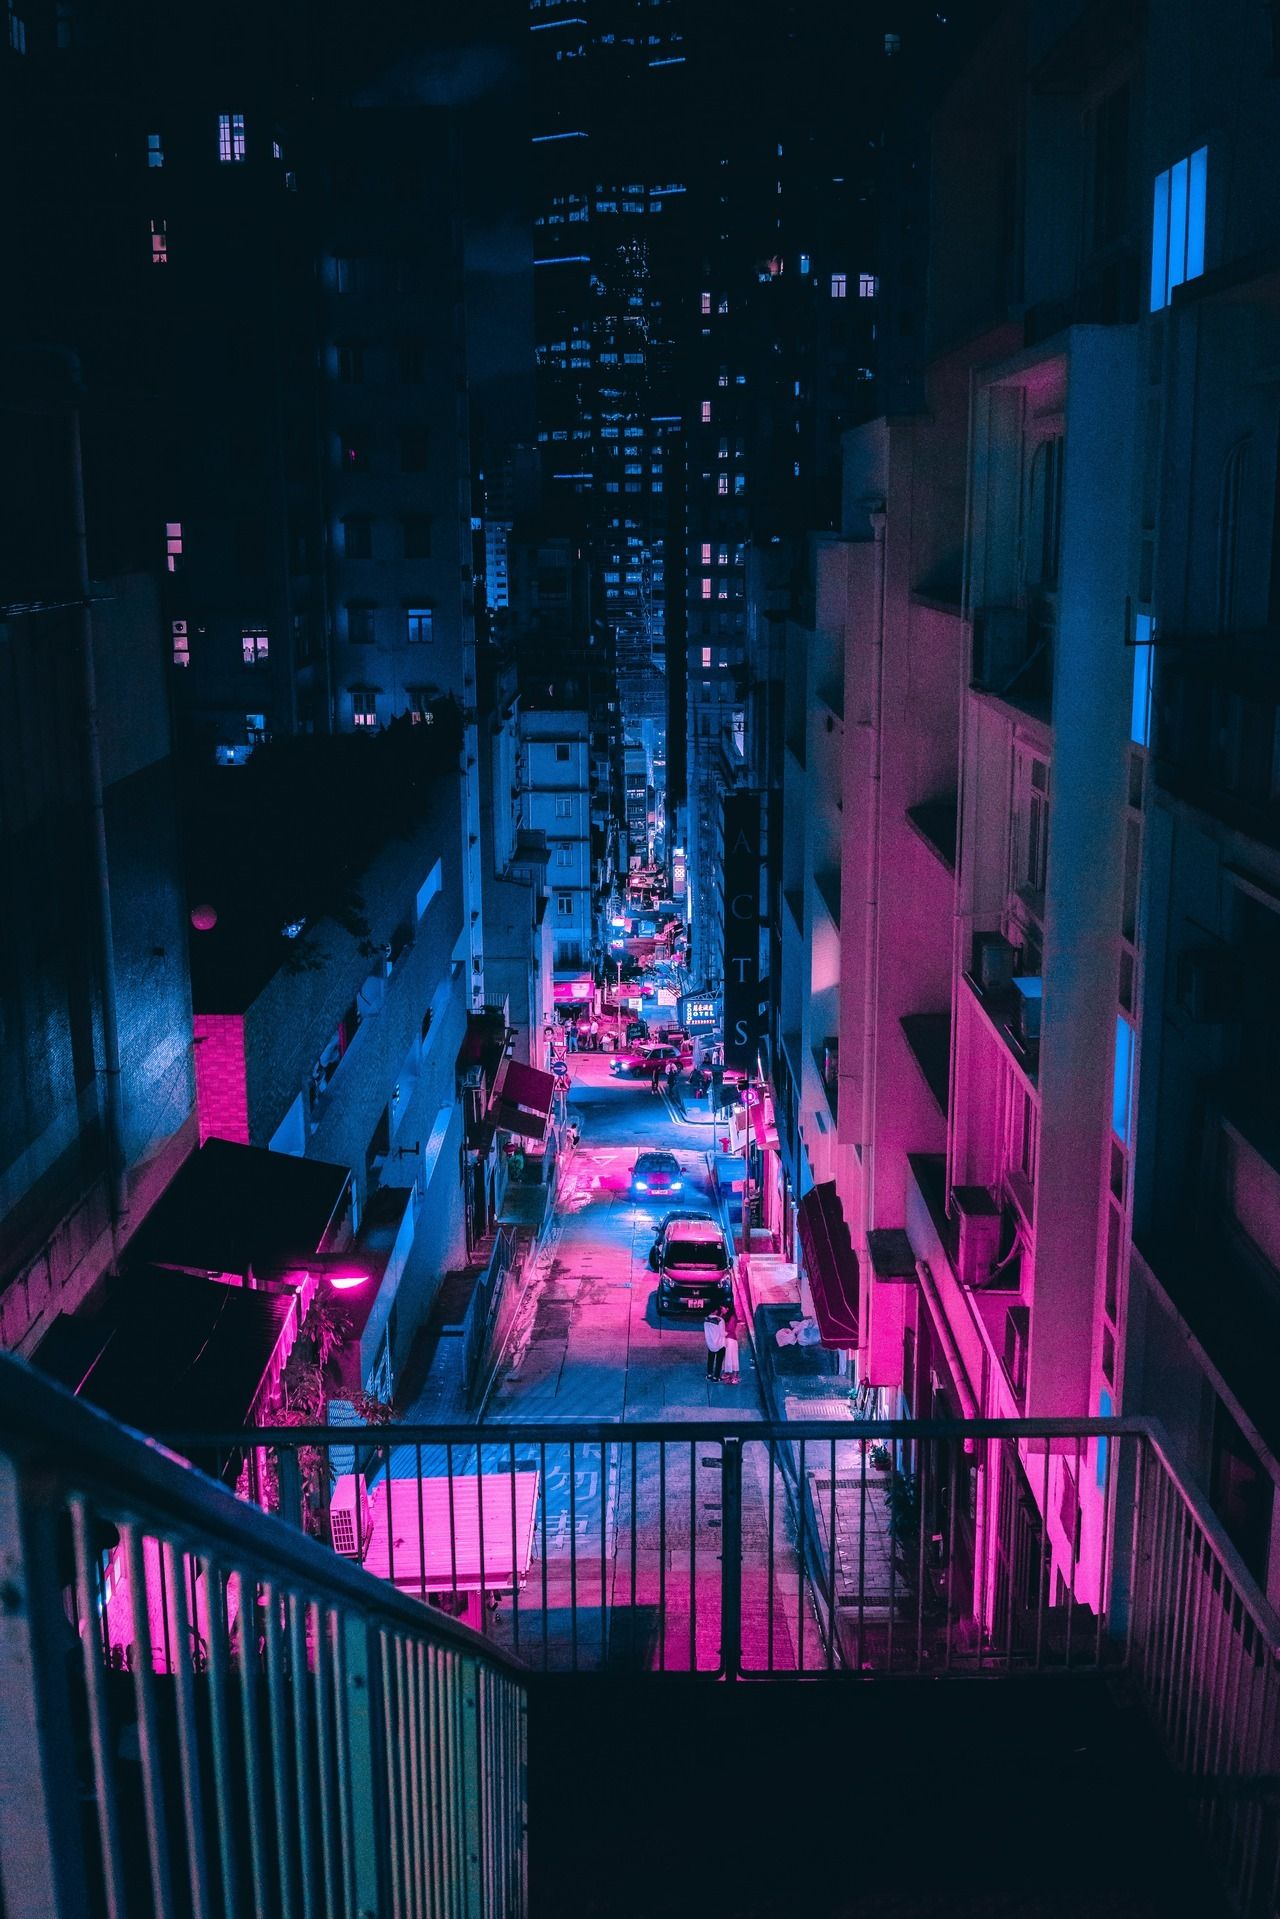 Aesthetic Wallpaper Blue And Pink